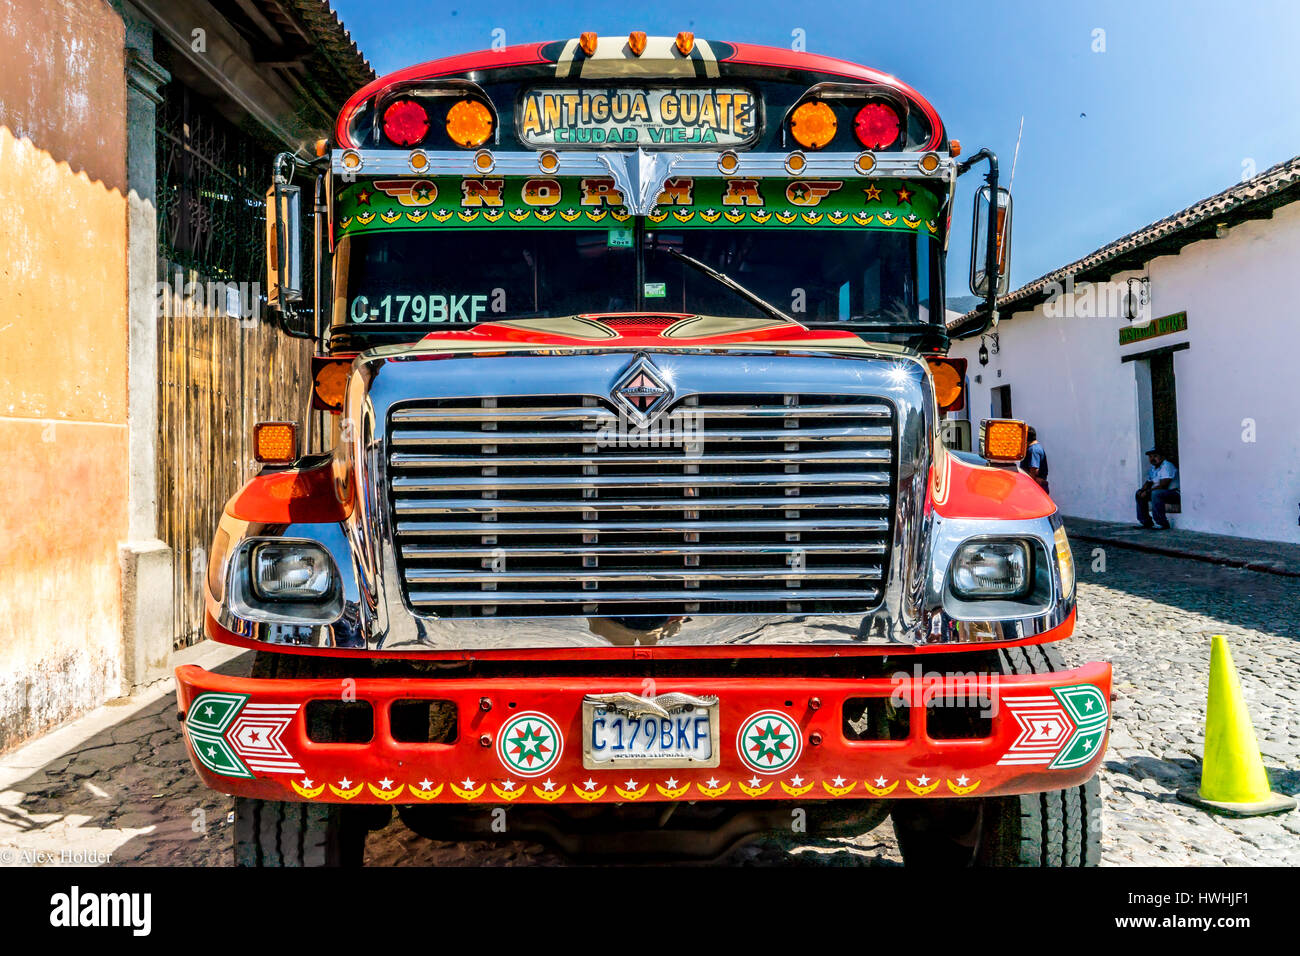 Antigua, Guatemala bus parked outside the old town during the Easter Week celebrations Stock Photo